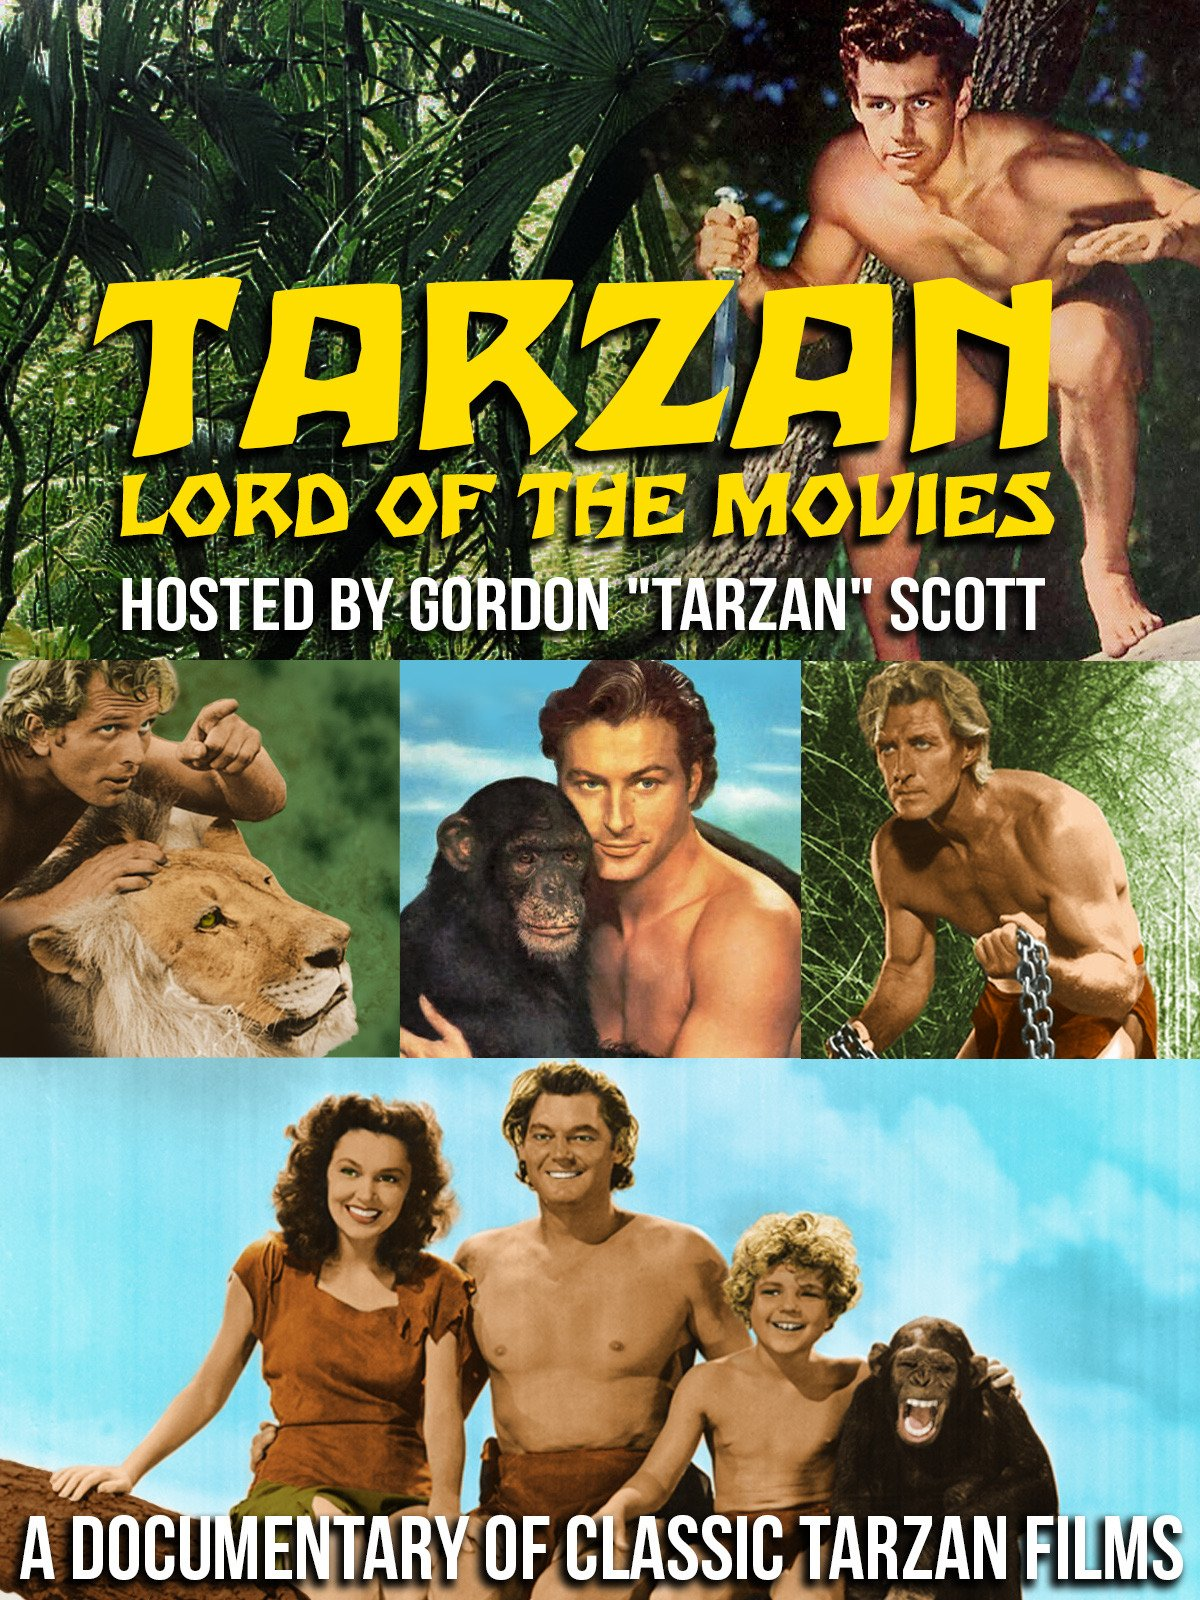 Tarzan, Lord of the Movies Hosted By Gordon